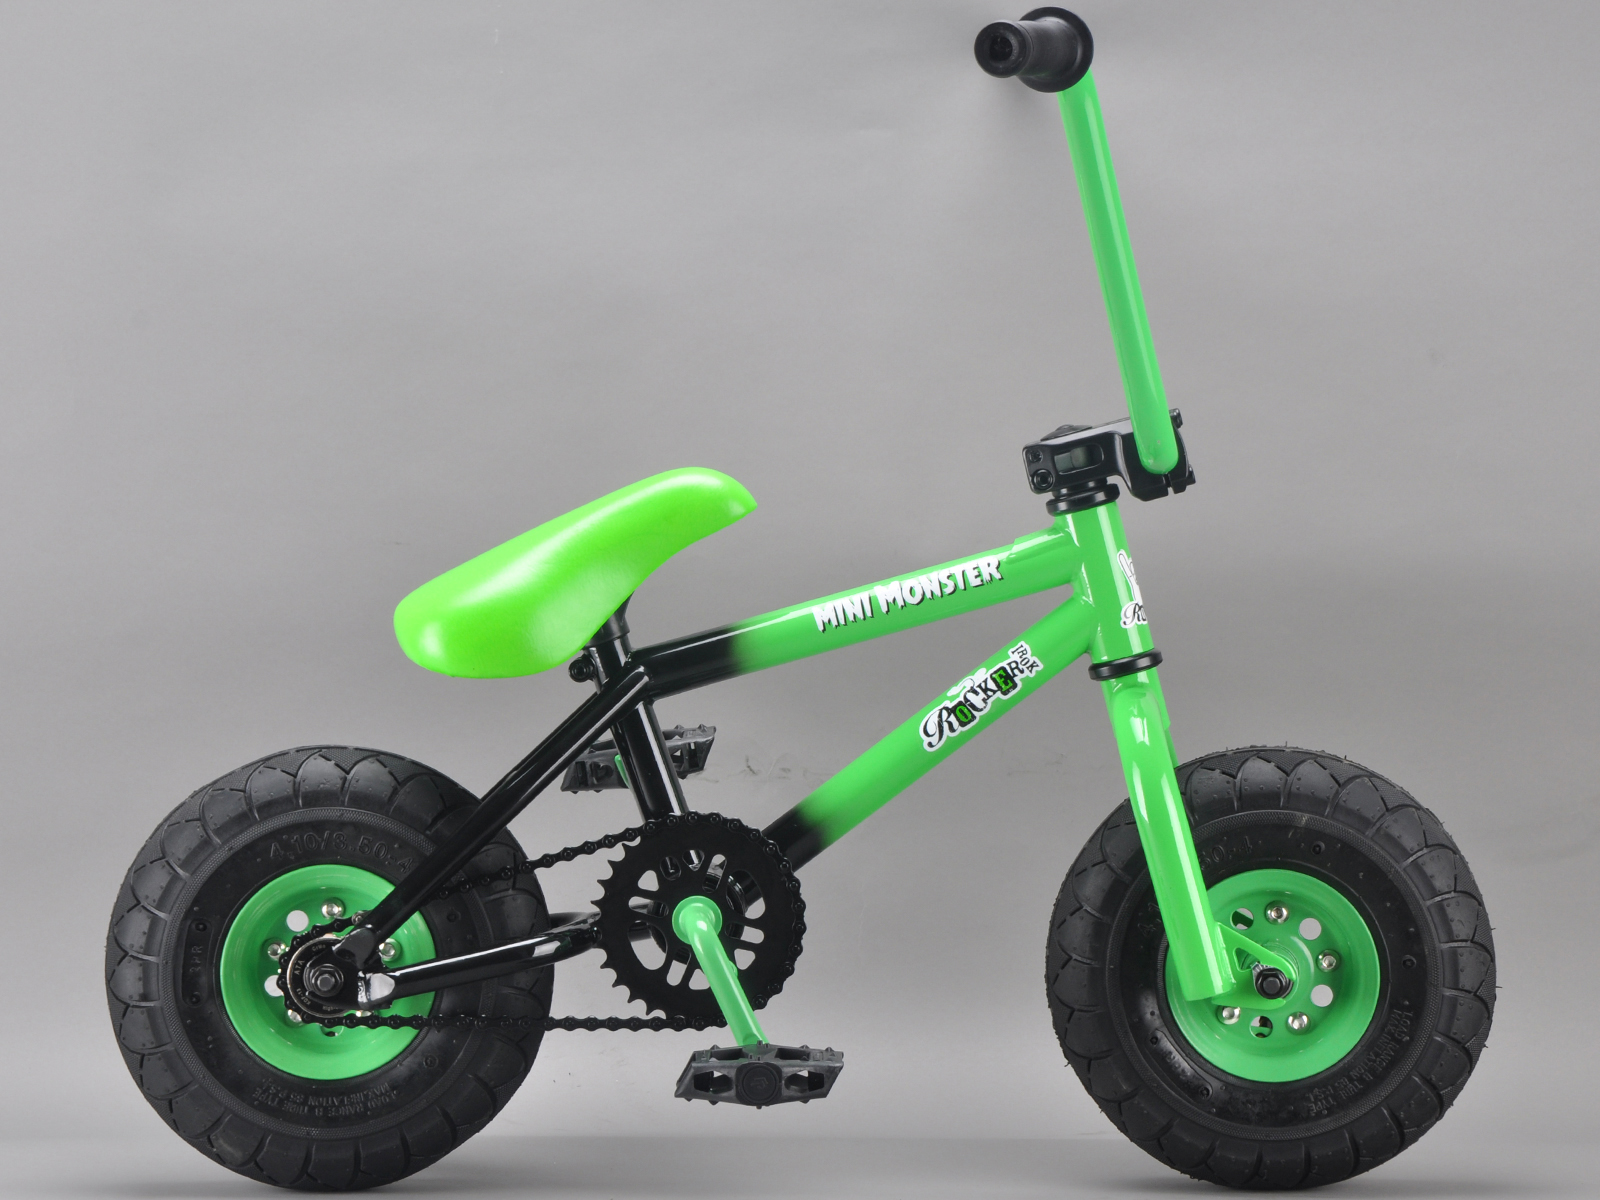 http://www.rockerbmx.com/images/stories/virtuemart/product/MMIROK2015%2018.jpg